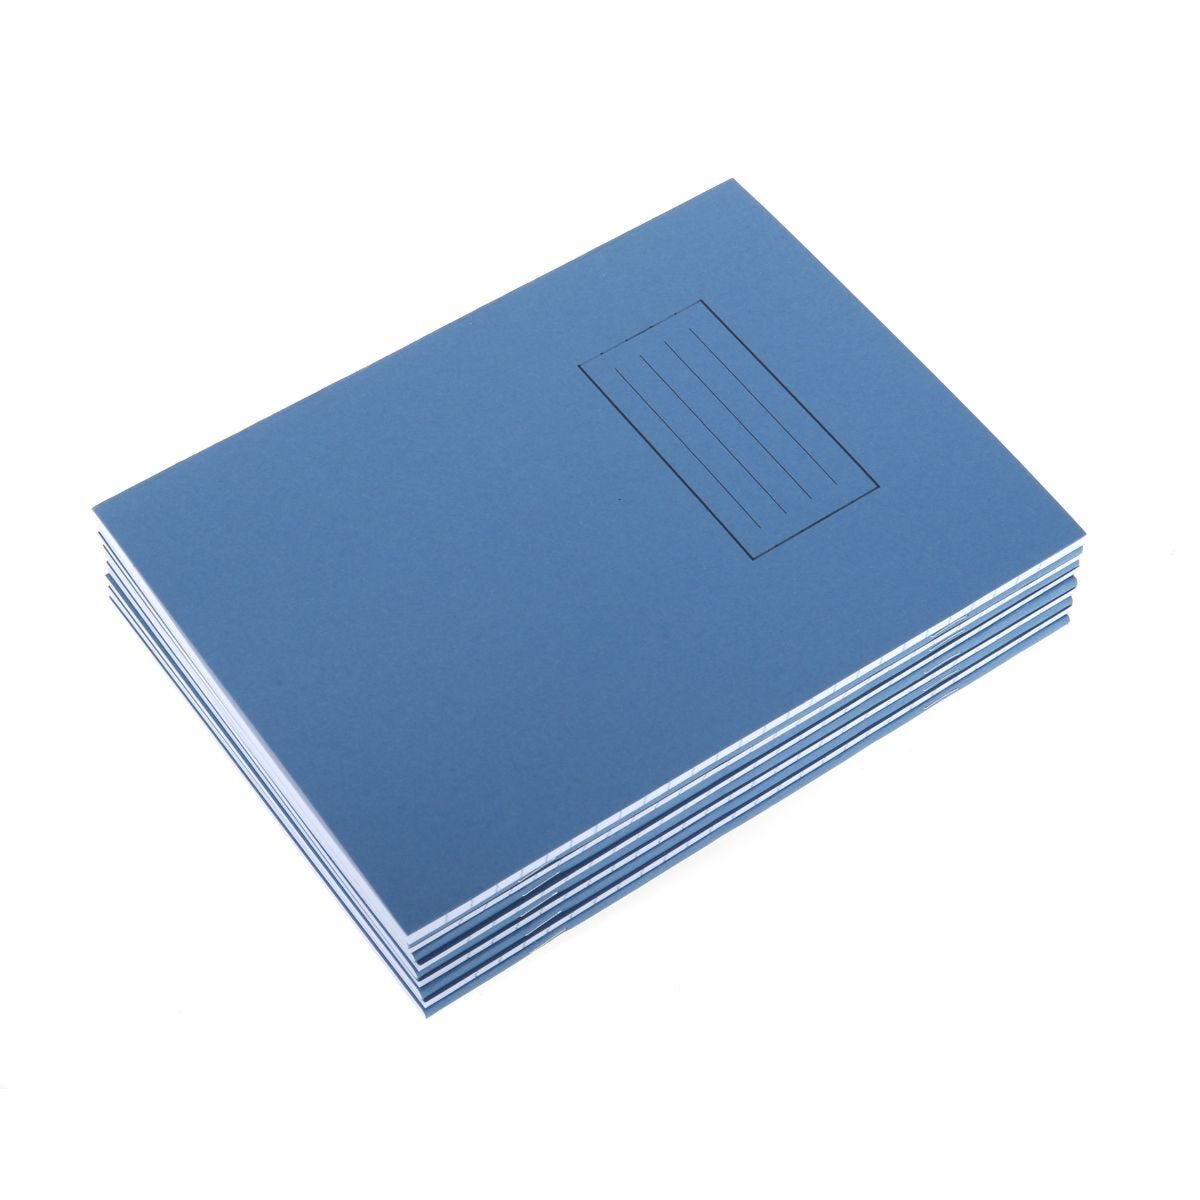 Silvine Exercise Book 9x7 75gsm Pack of 10 Blue